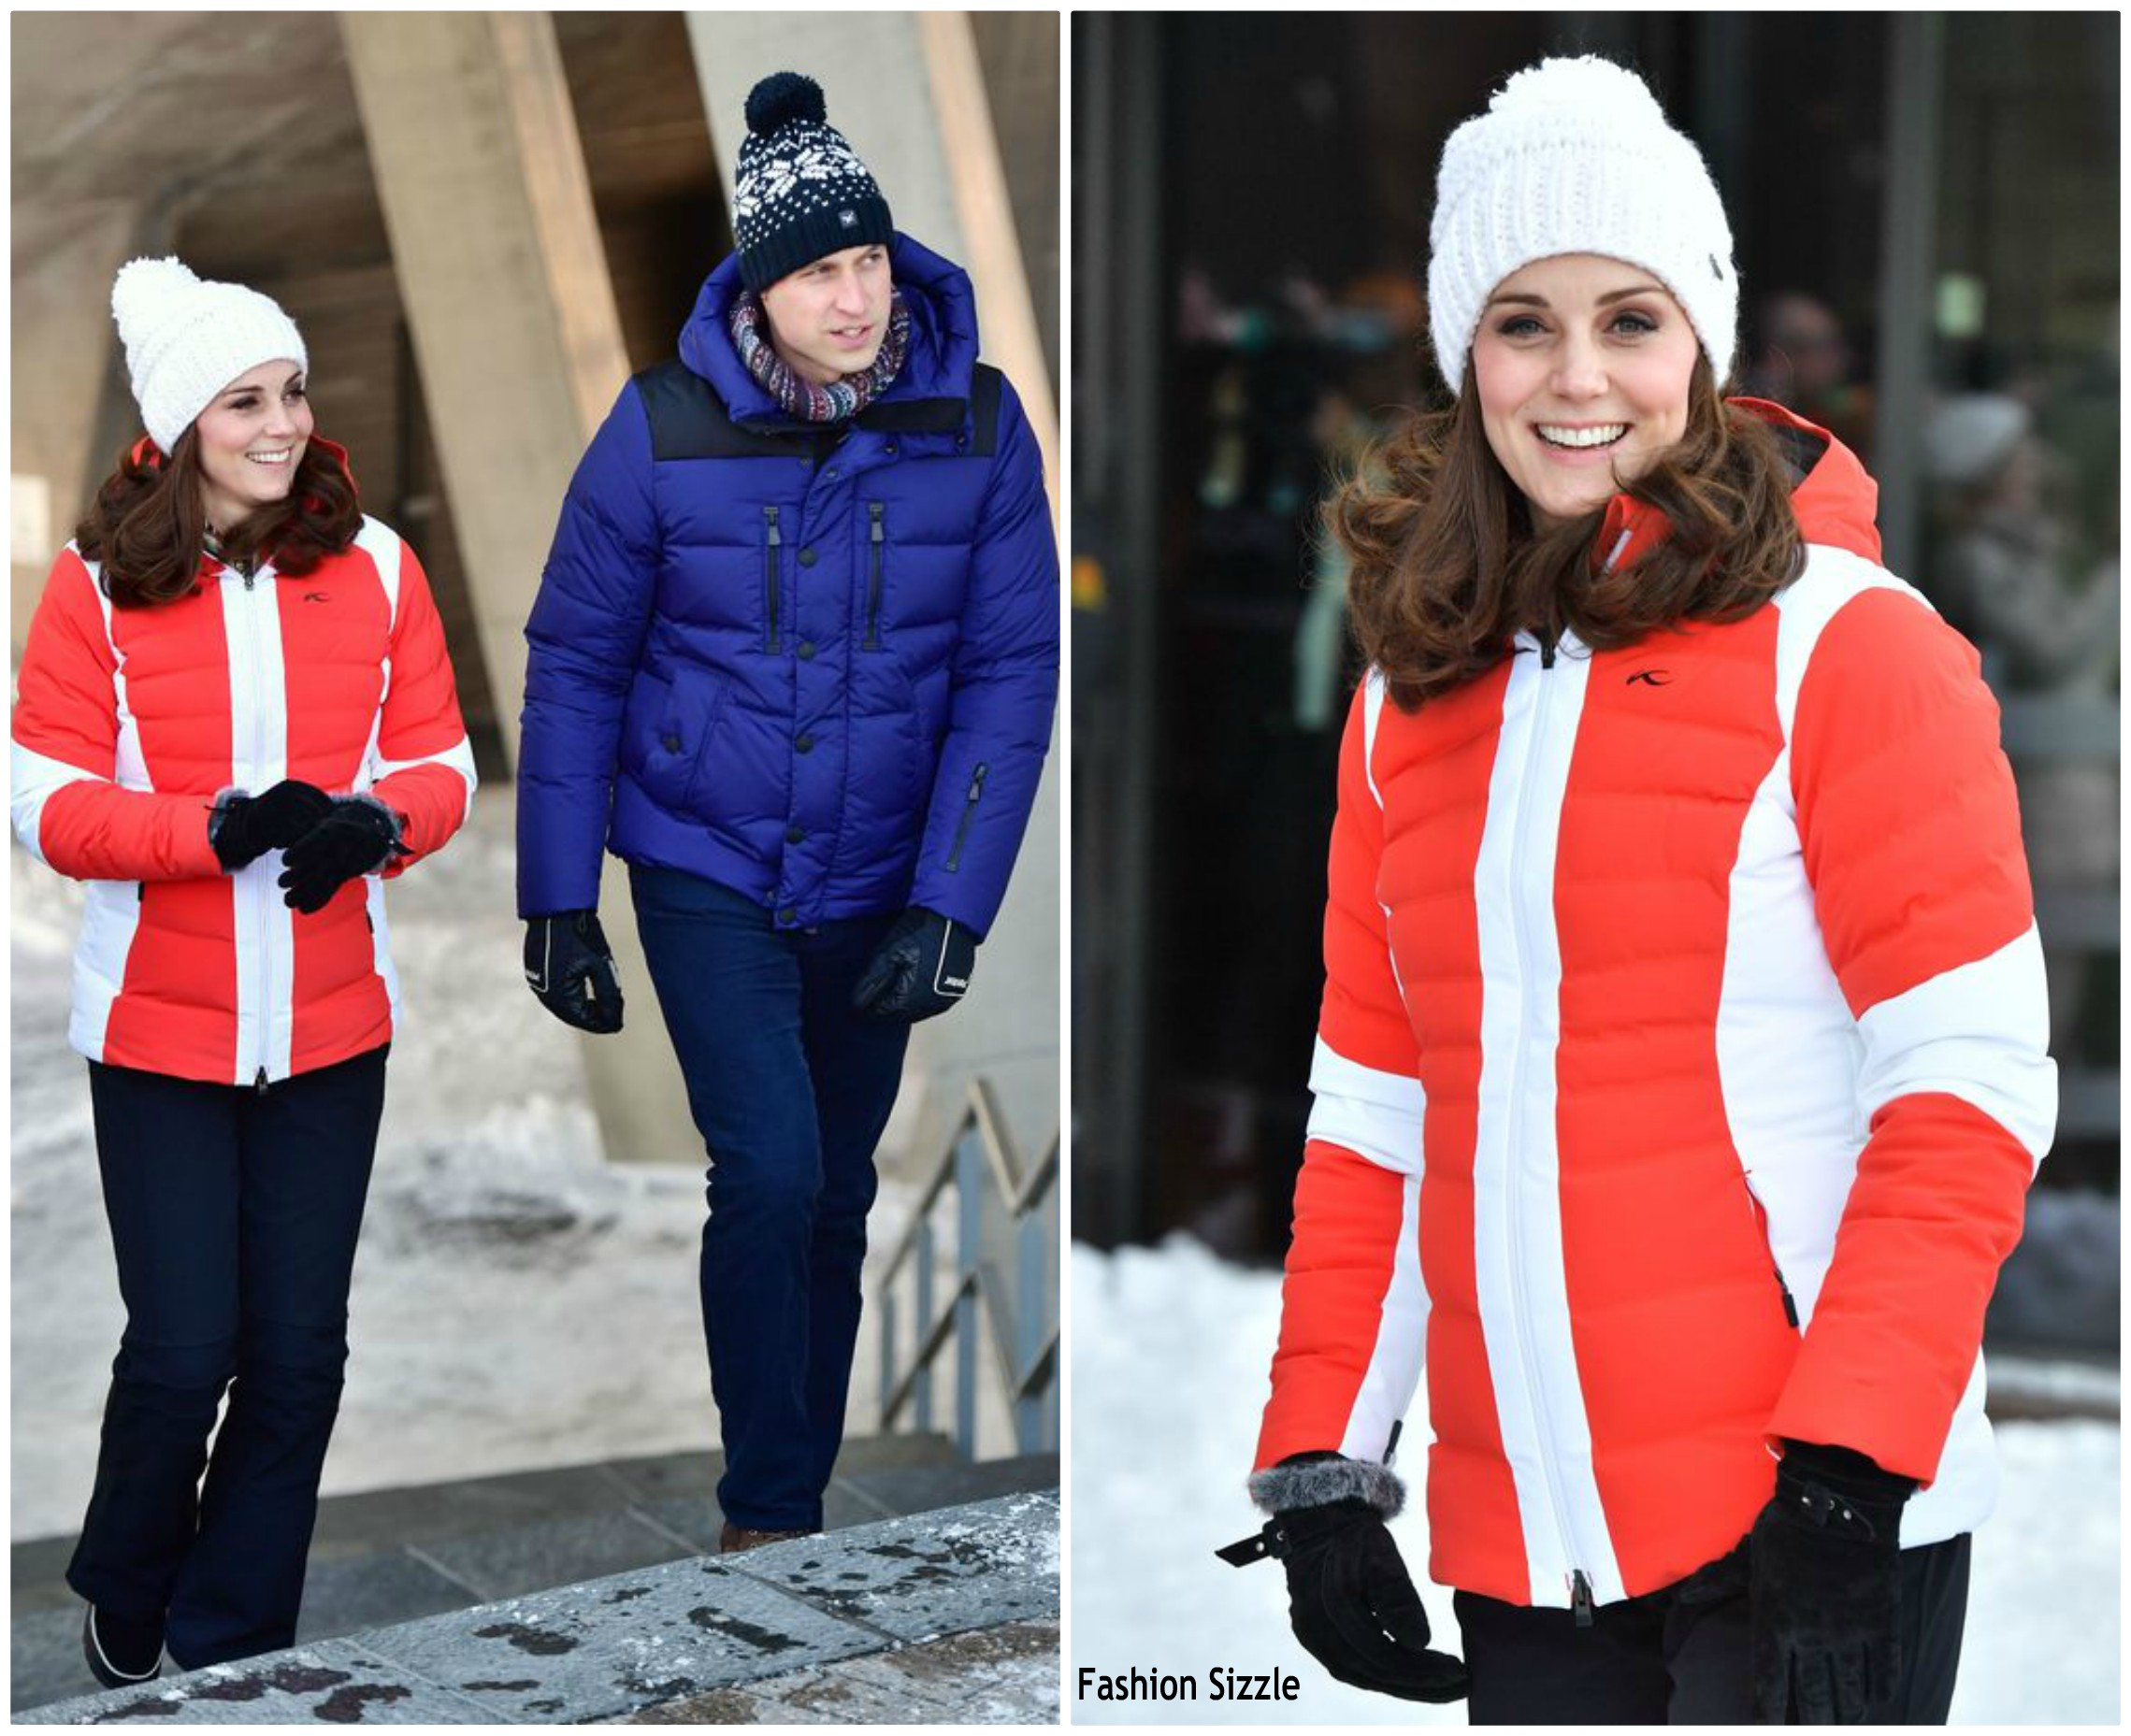 duke-and-duchess-tour-holmenkollen-ski-jump-in-olso